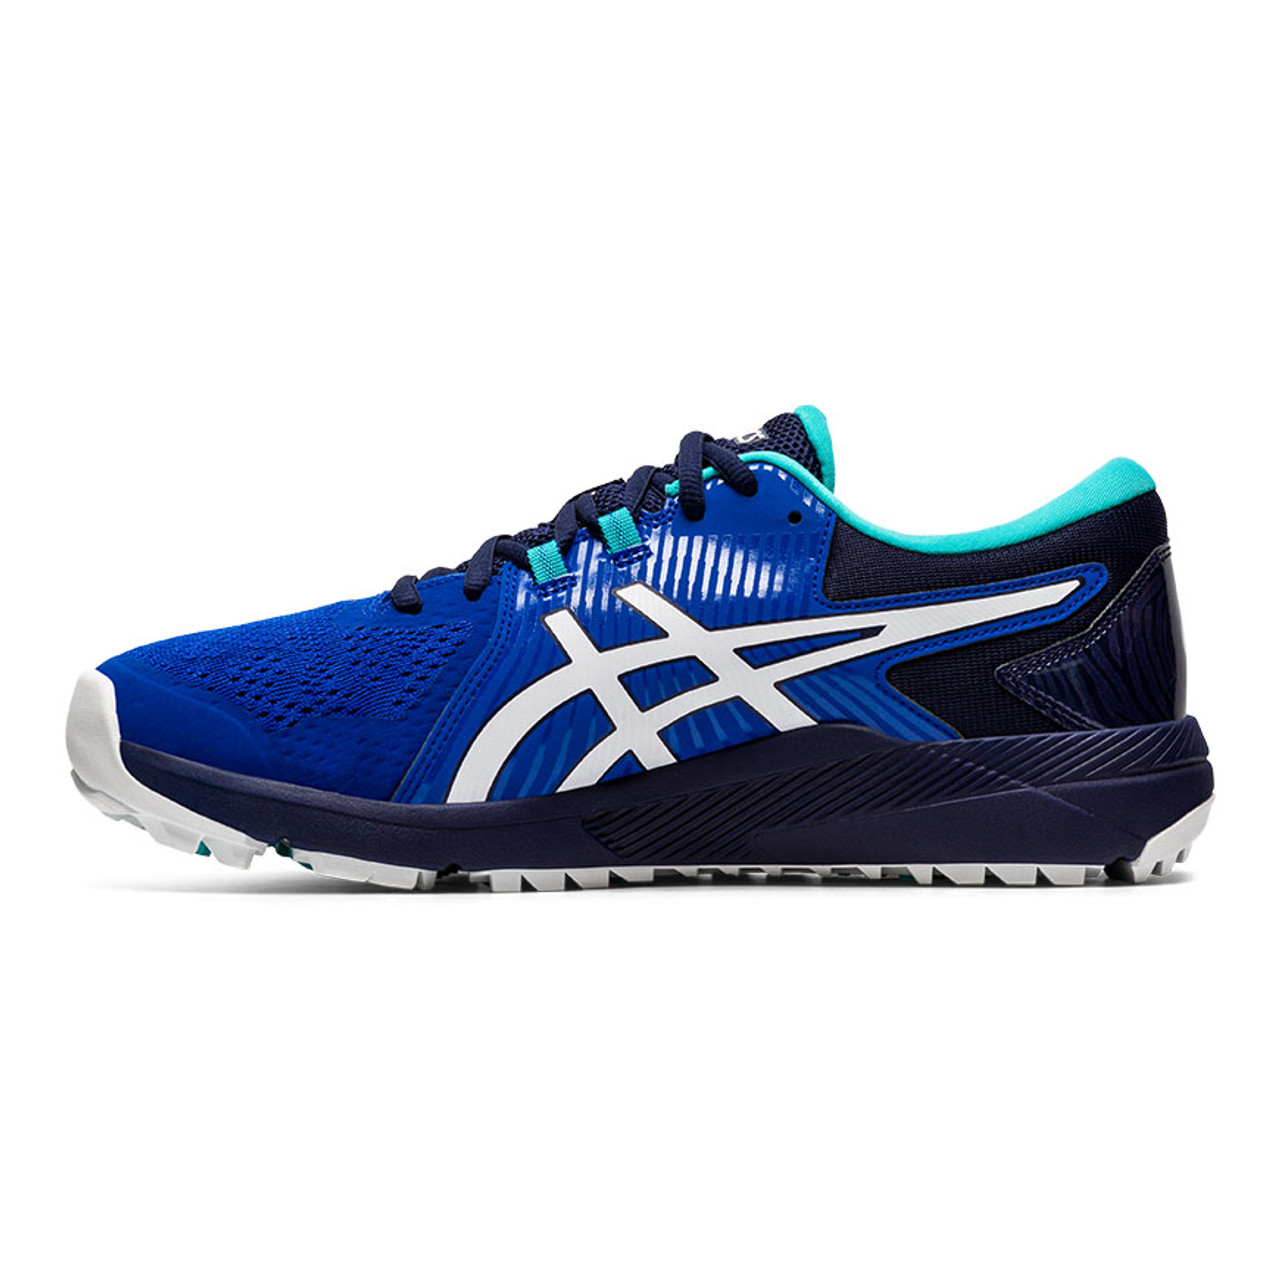 Asics Gel-Course Glide Golf Shoes - Royal / White / Teal